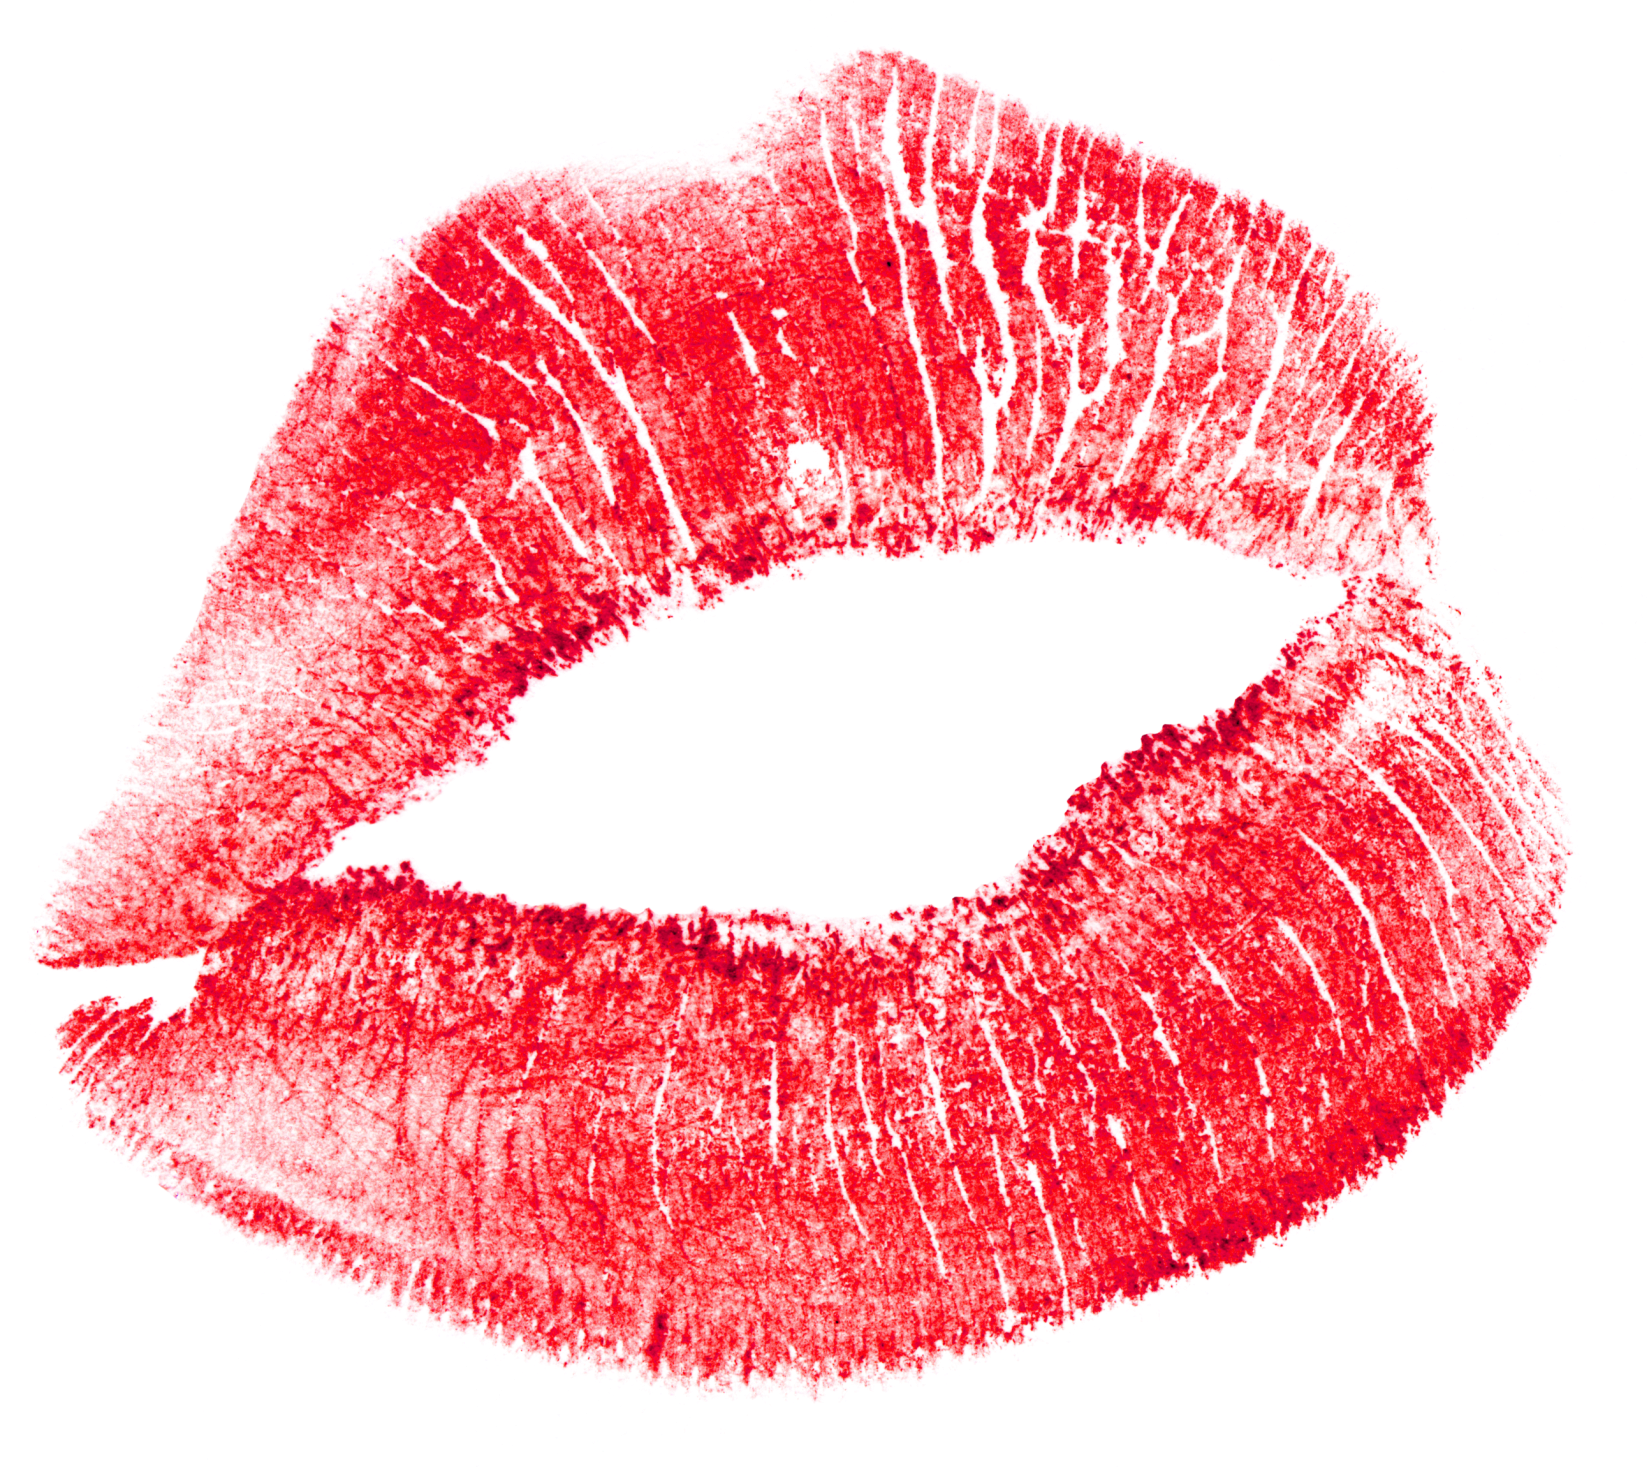 Lips Kiss Png Image For Free Download